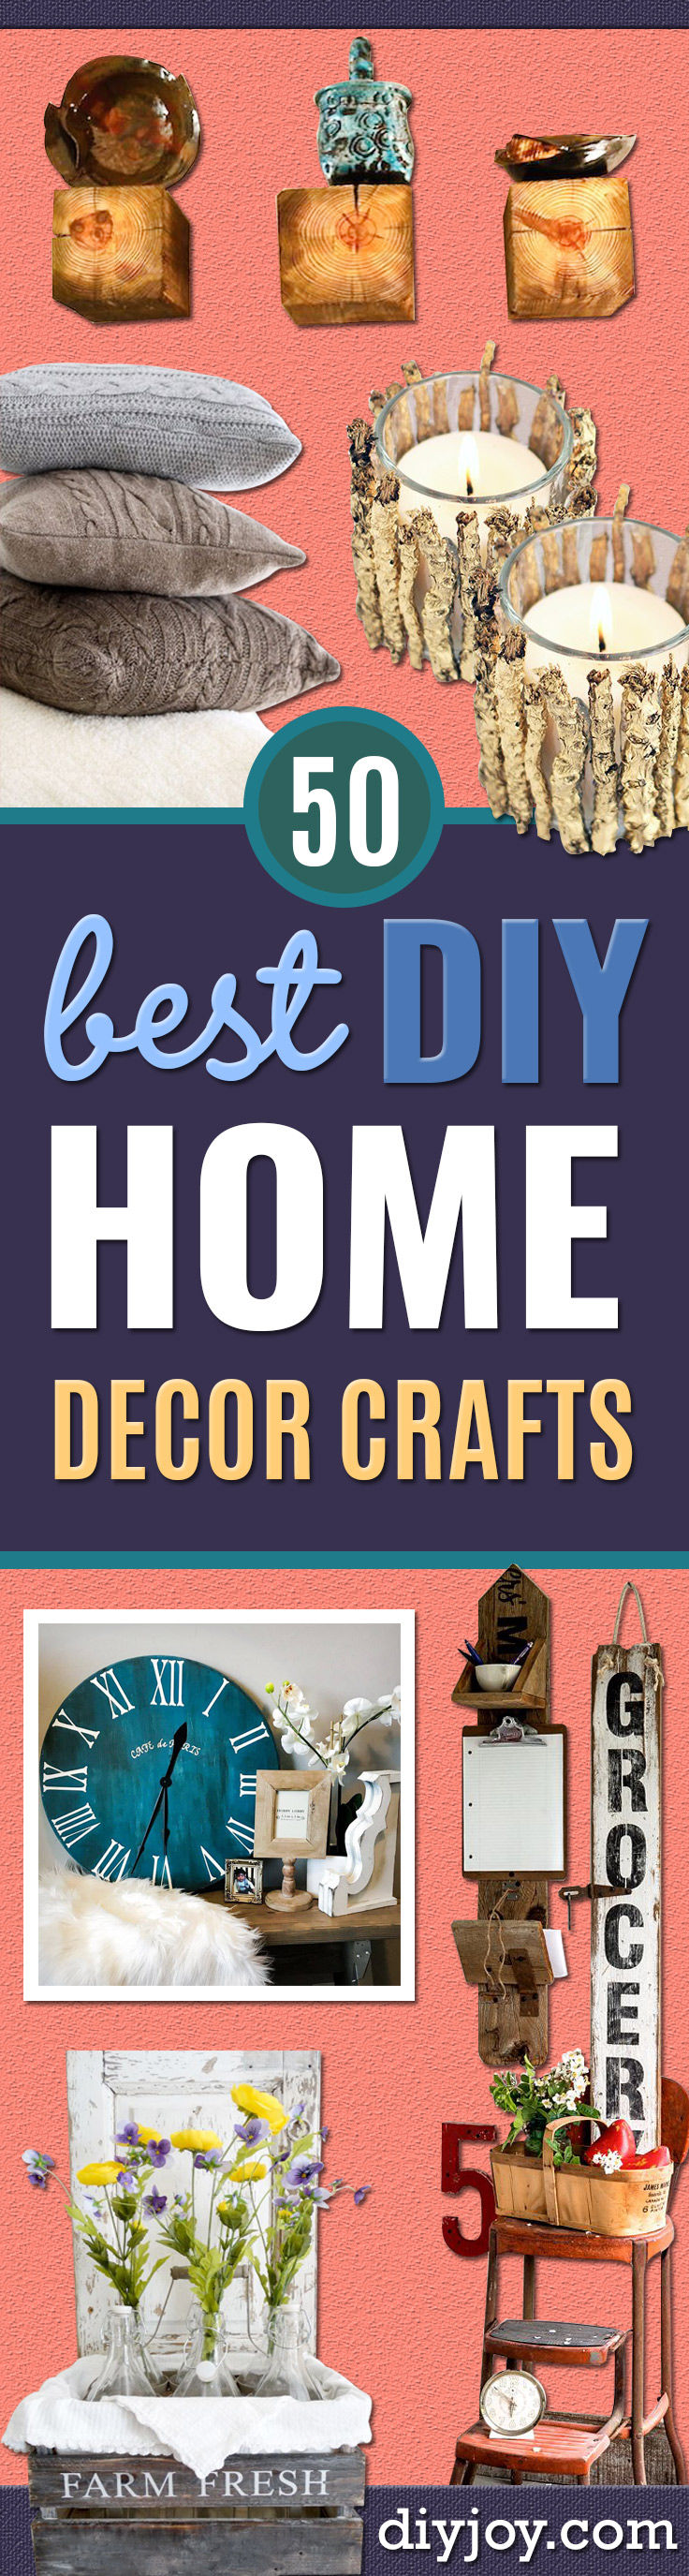 Best DIY Home Decor Crafts - Easy Craft Ideas To Make From Dollar Store Items - Cheap Wall Art, Easy Do It Yourself Gifts, Modern Wall Art On A Budget, Tabletop and Centerpiece Tutorials - Cool But Affordable Room and Home Decor With Step by Step Tutorials